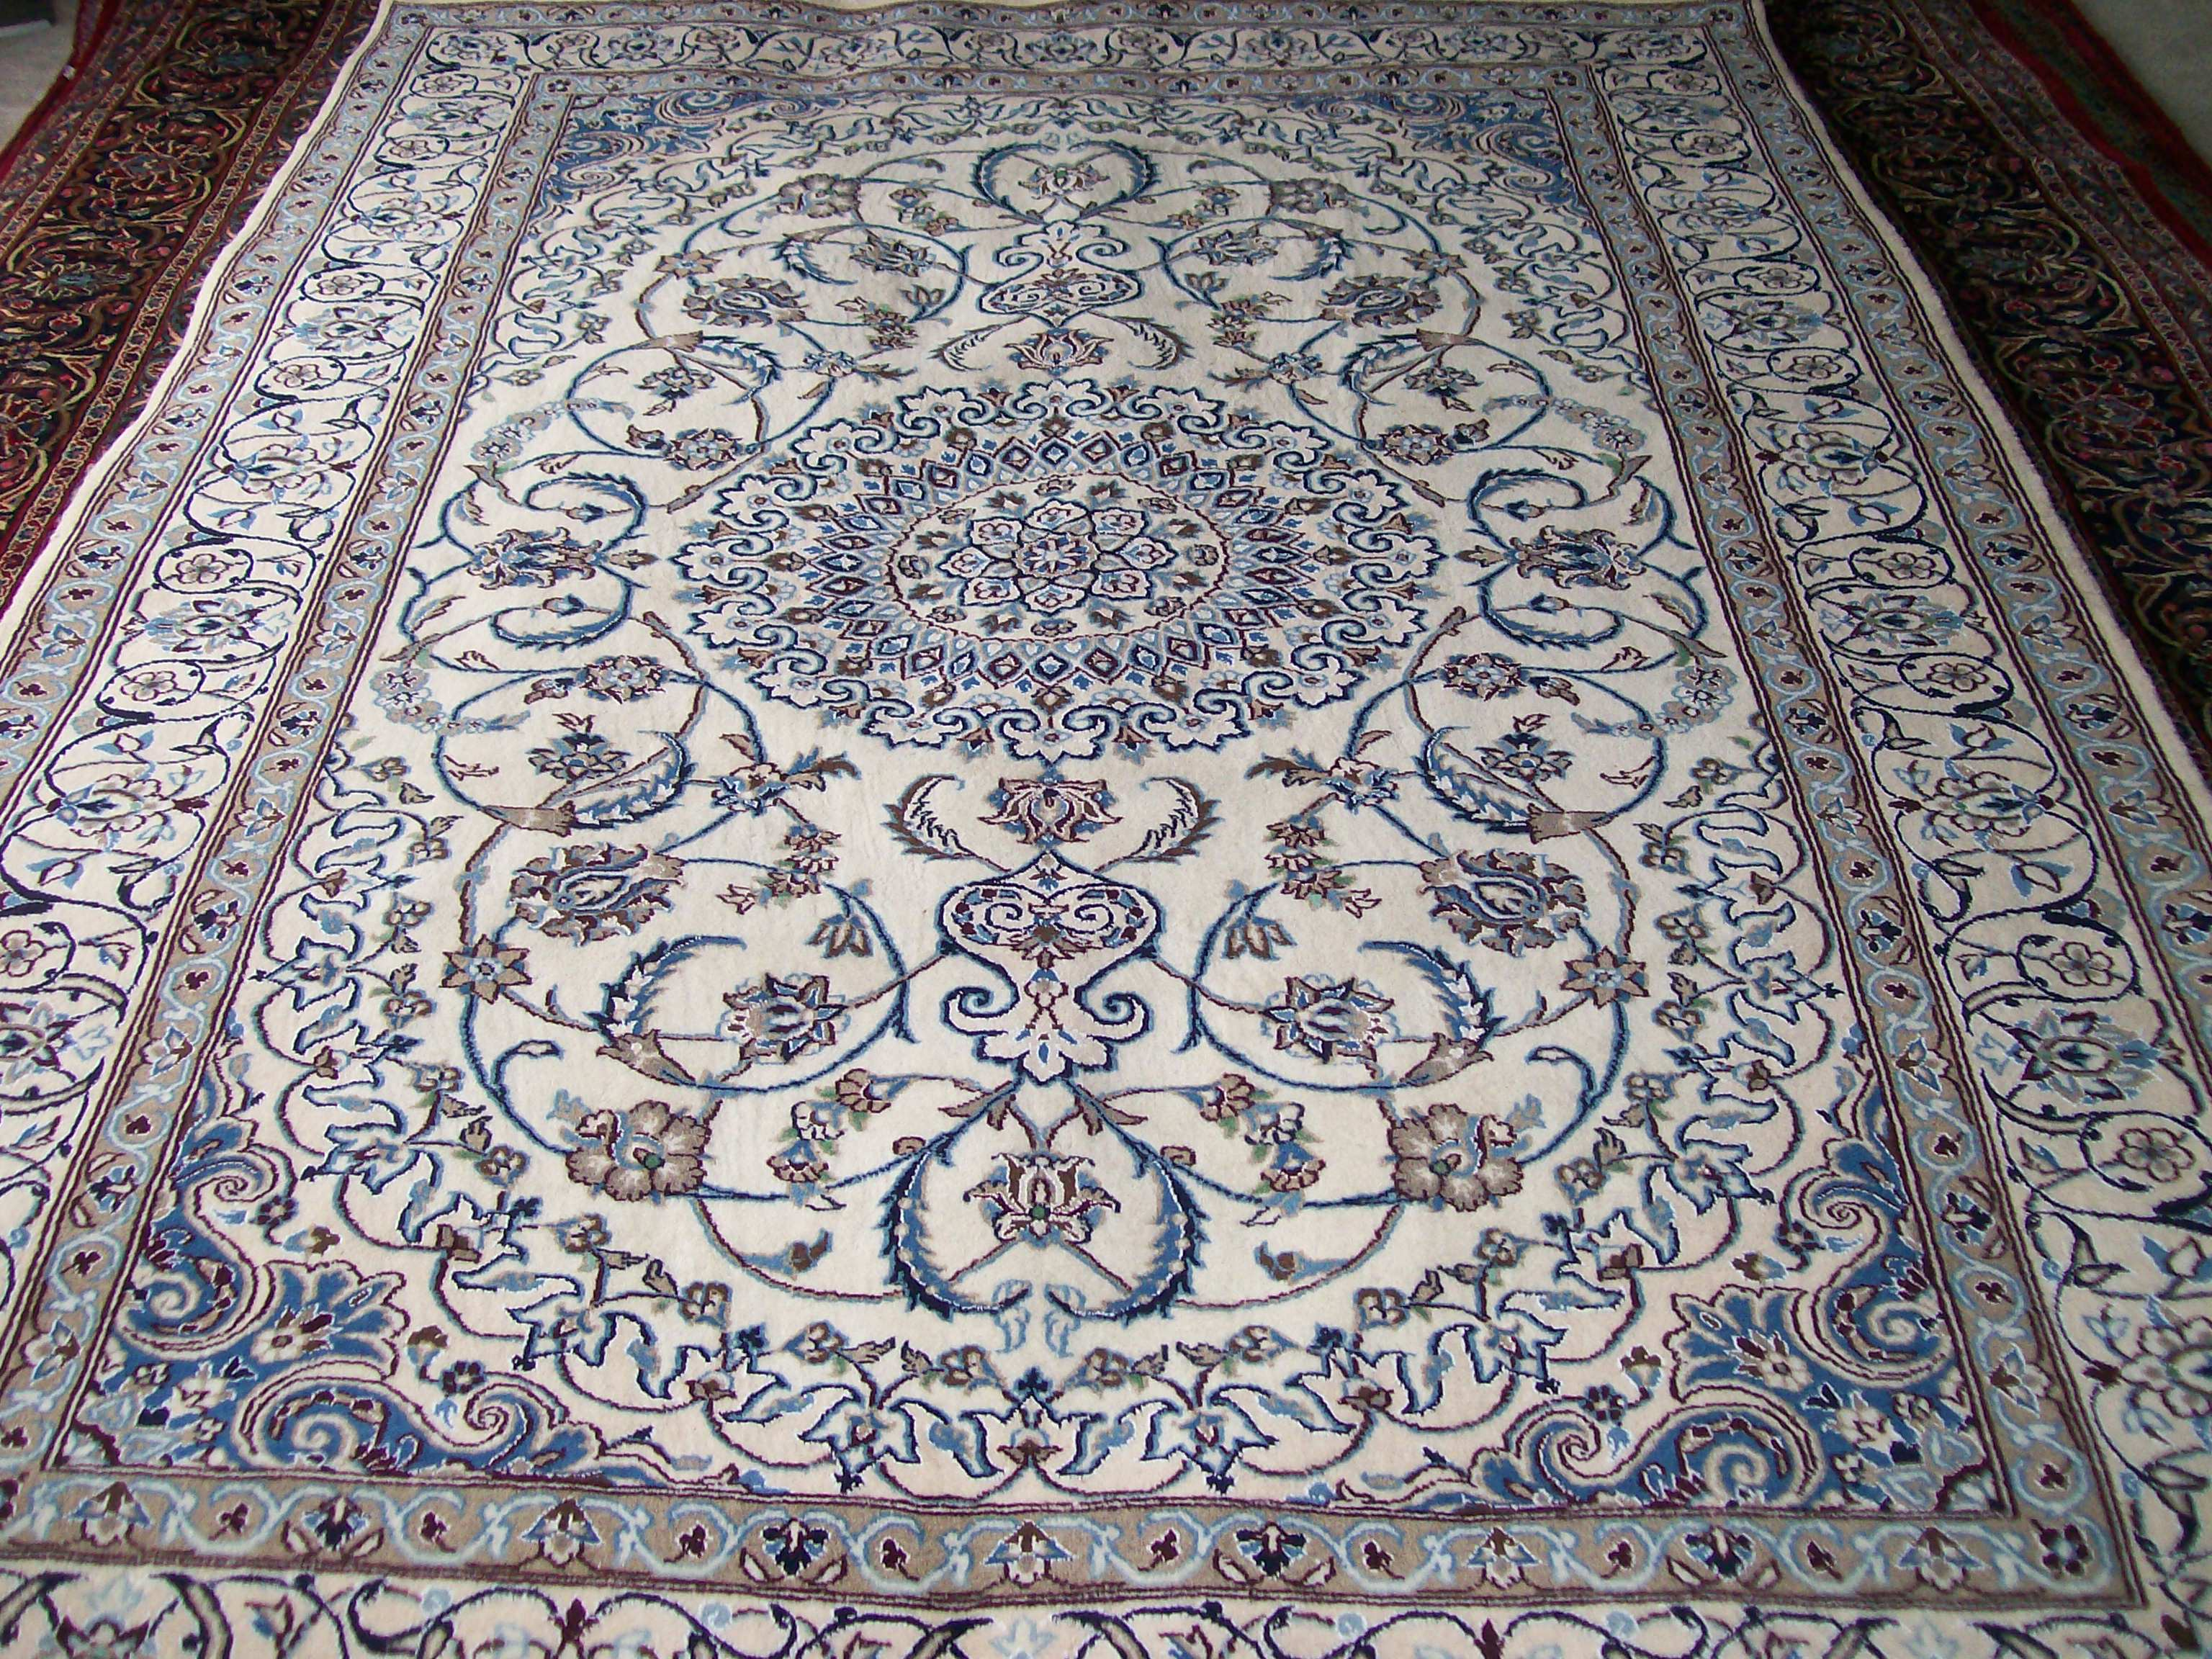 nain rug nain teppich blau wei in 310x190 5120 17066 bei brand new persian hand knotted rugs. Black Bedroom Furniture Sets. Home Design Ideas